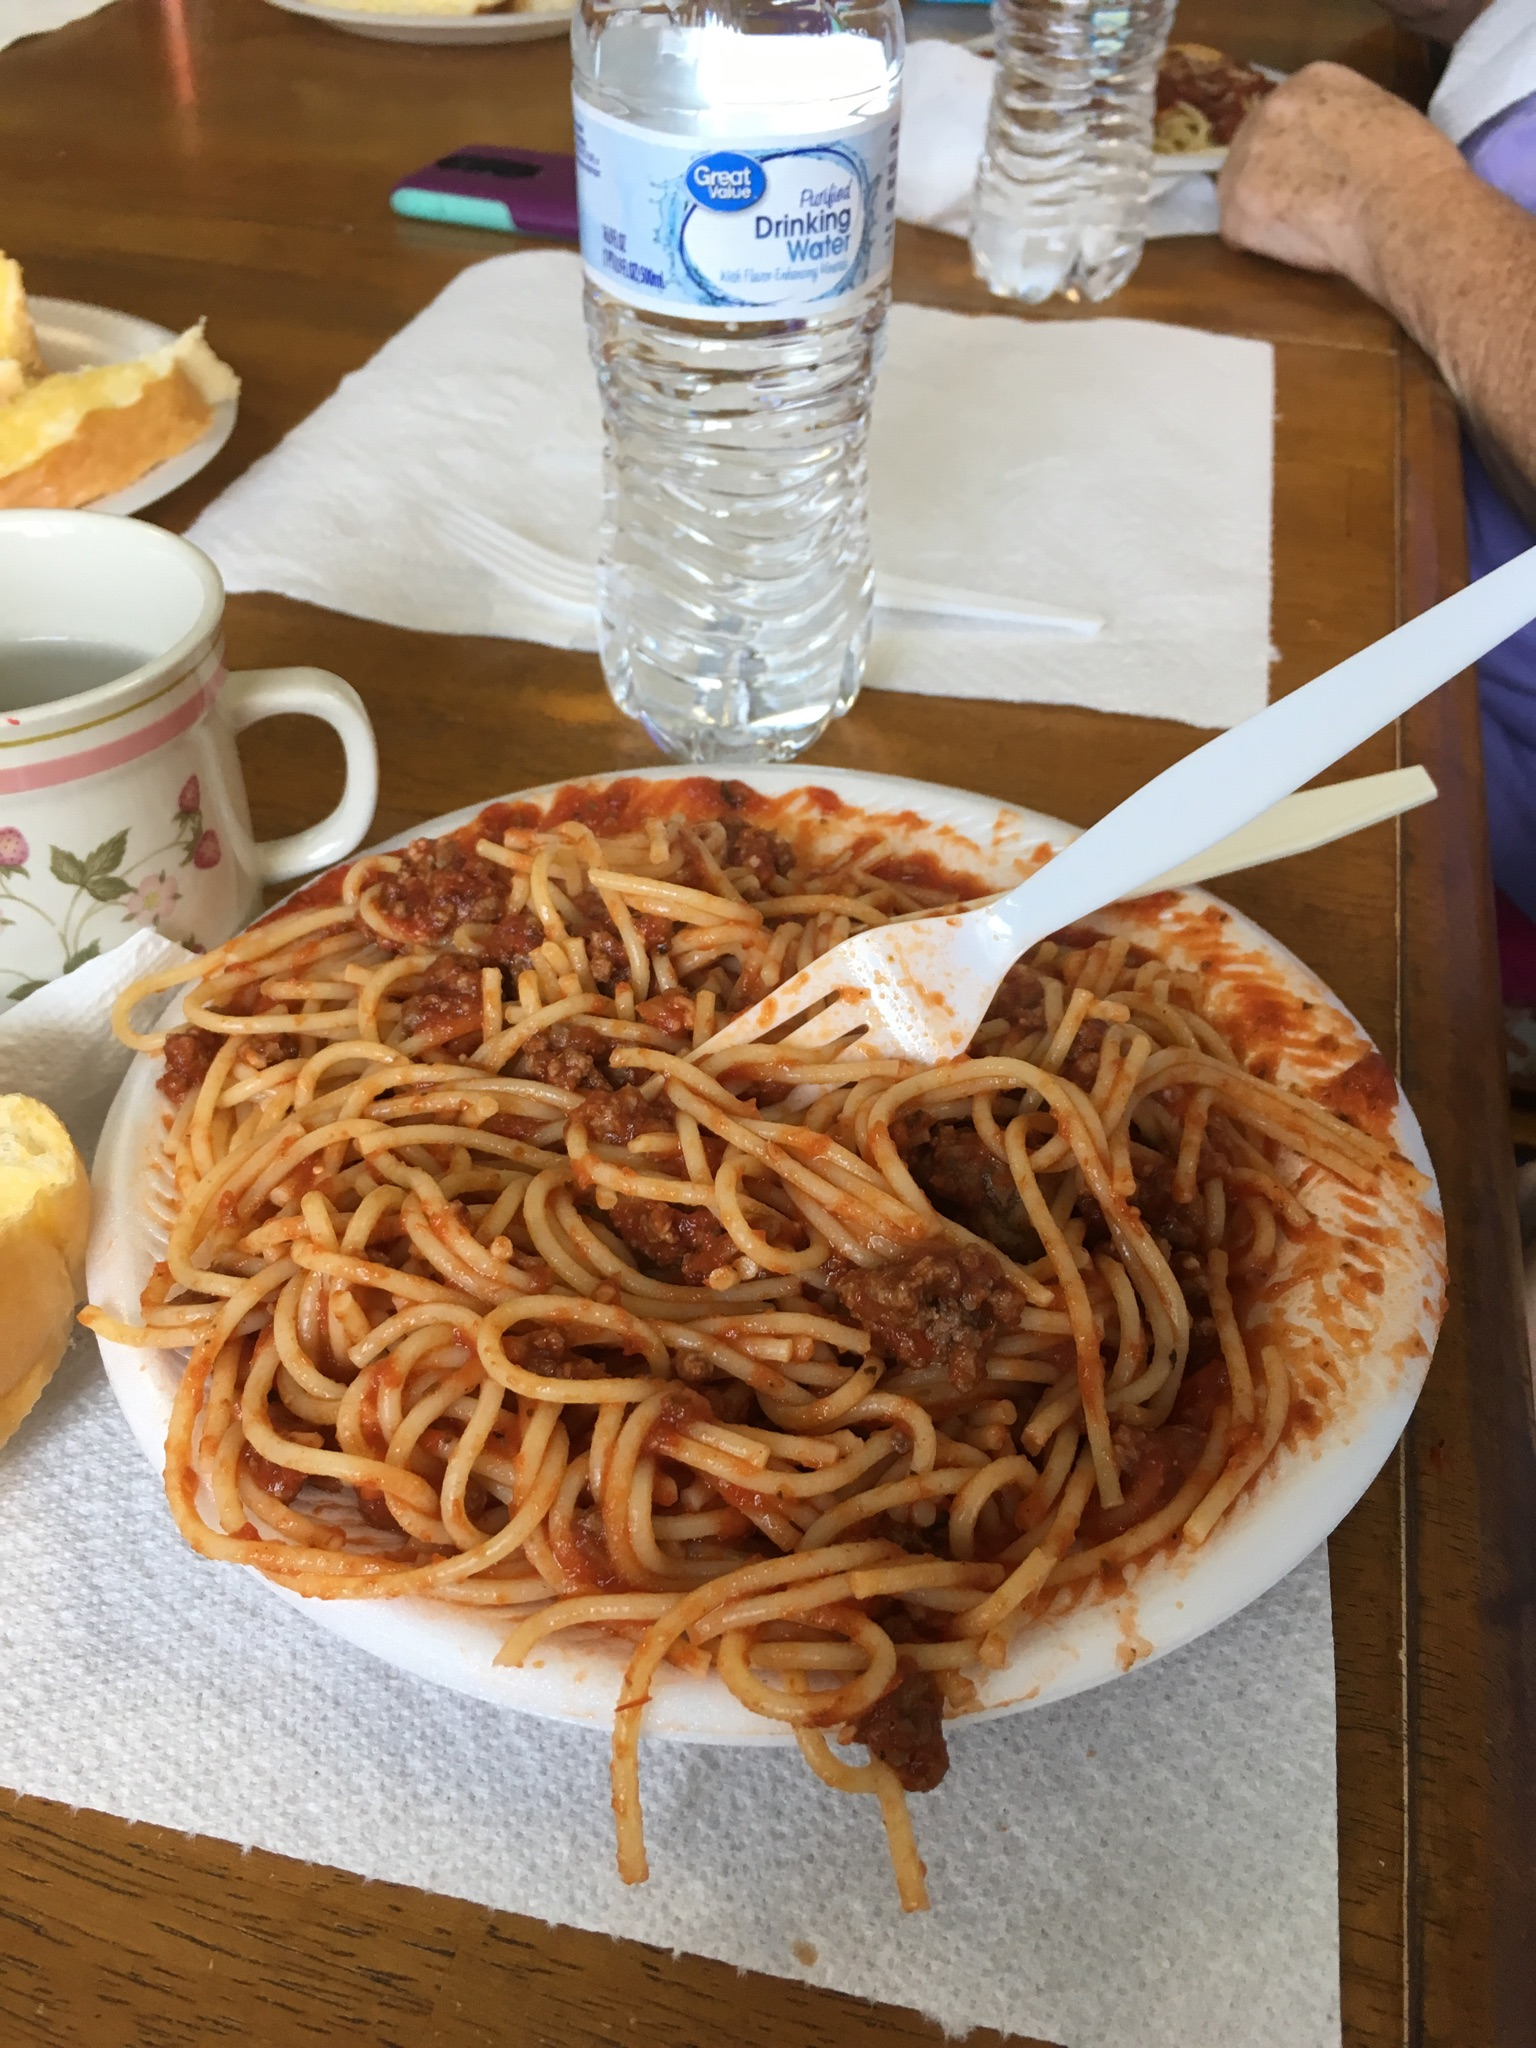 A heaping plate of spaghetti with a bottle of water in the background.